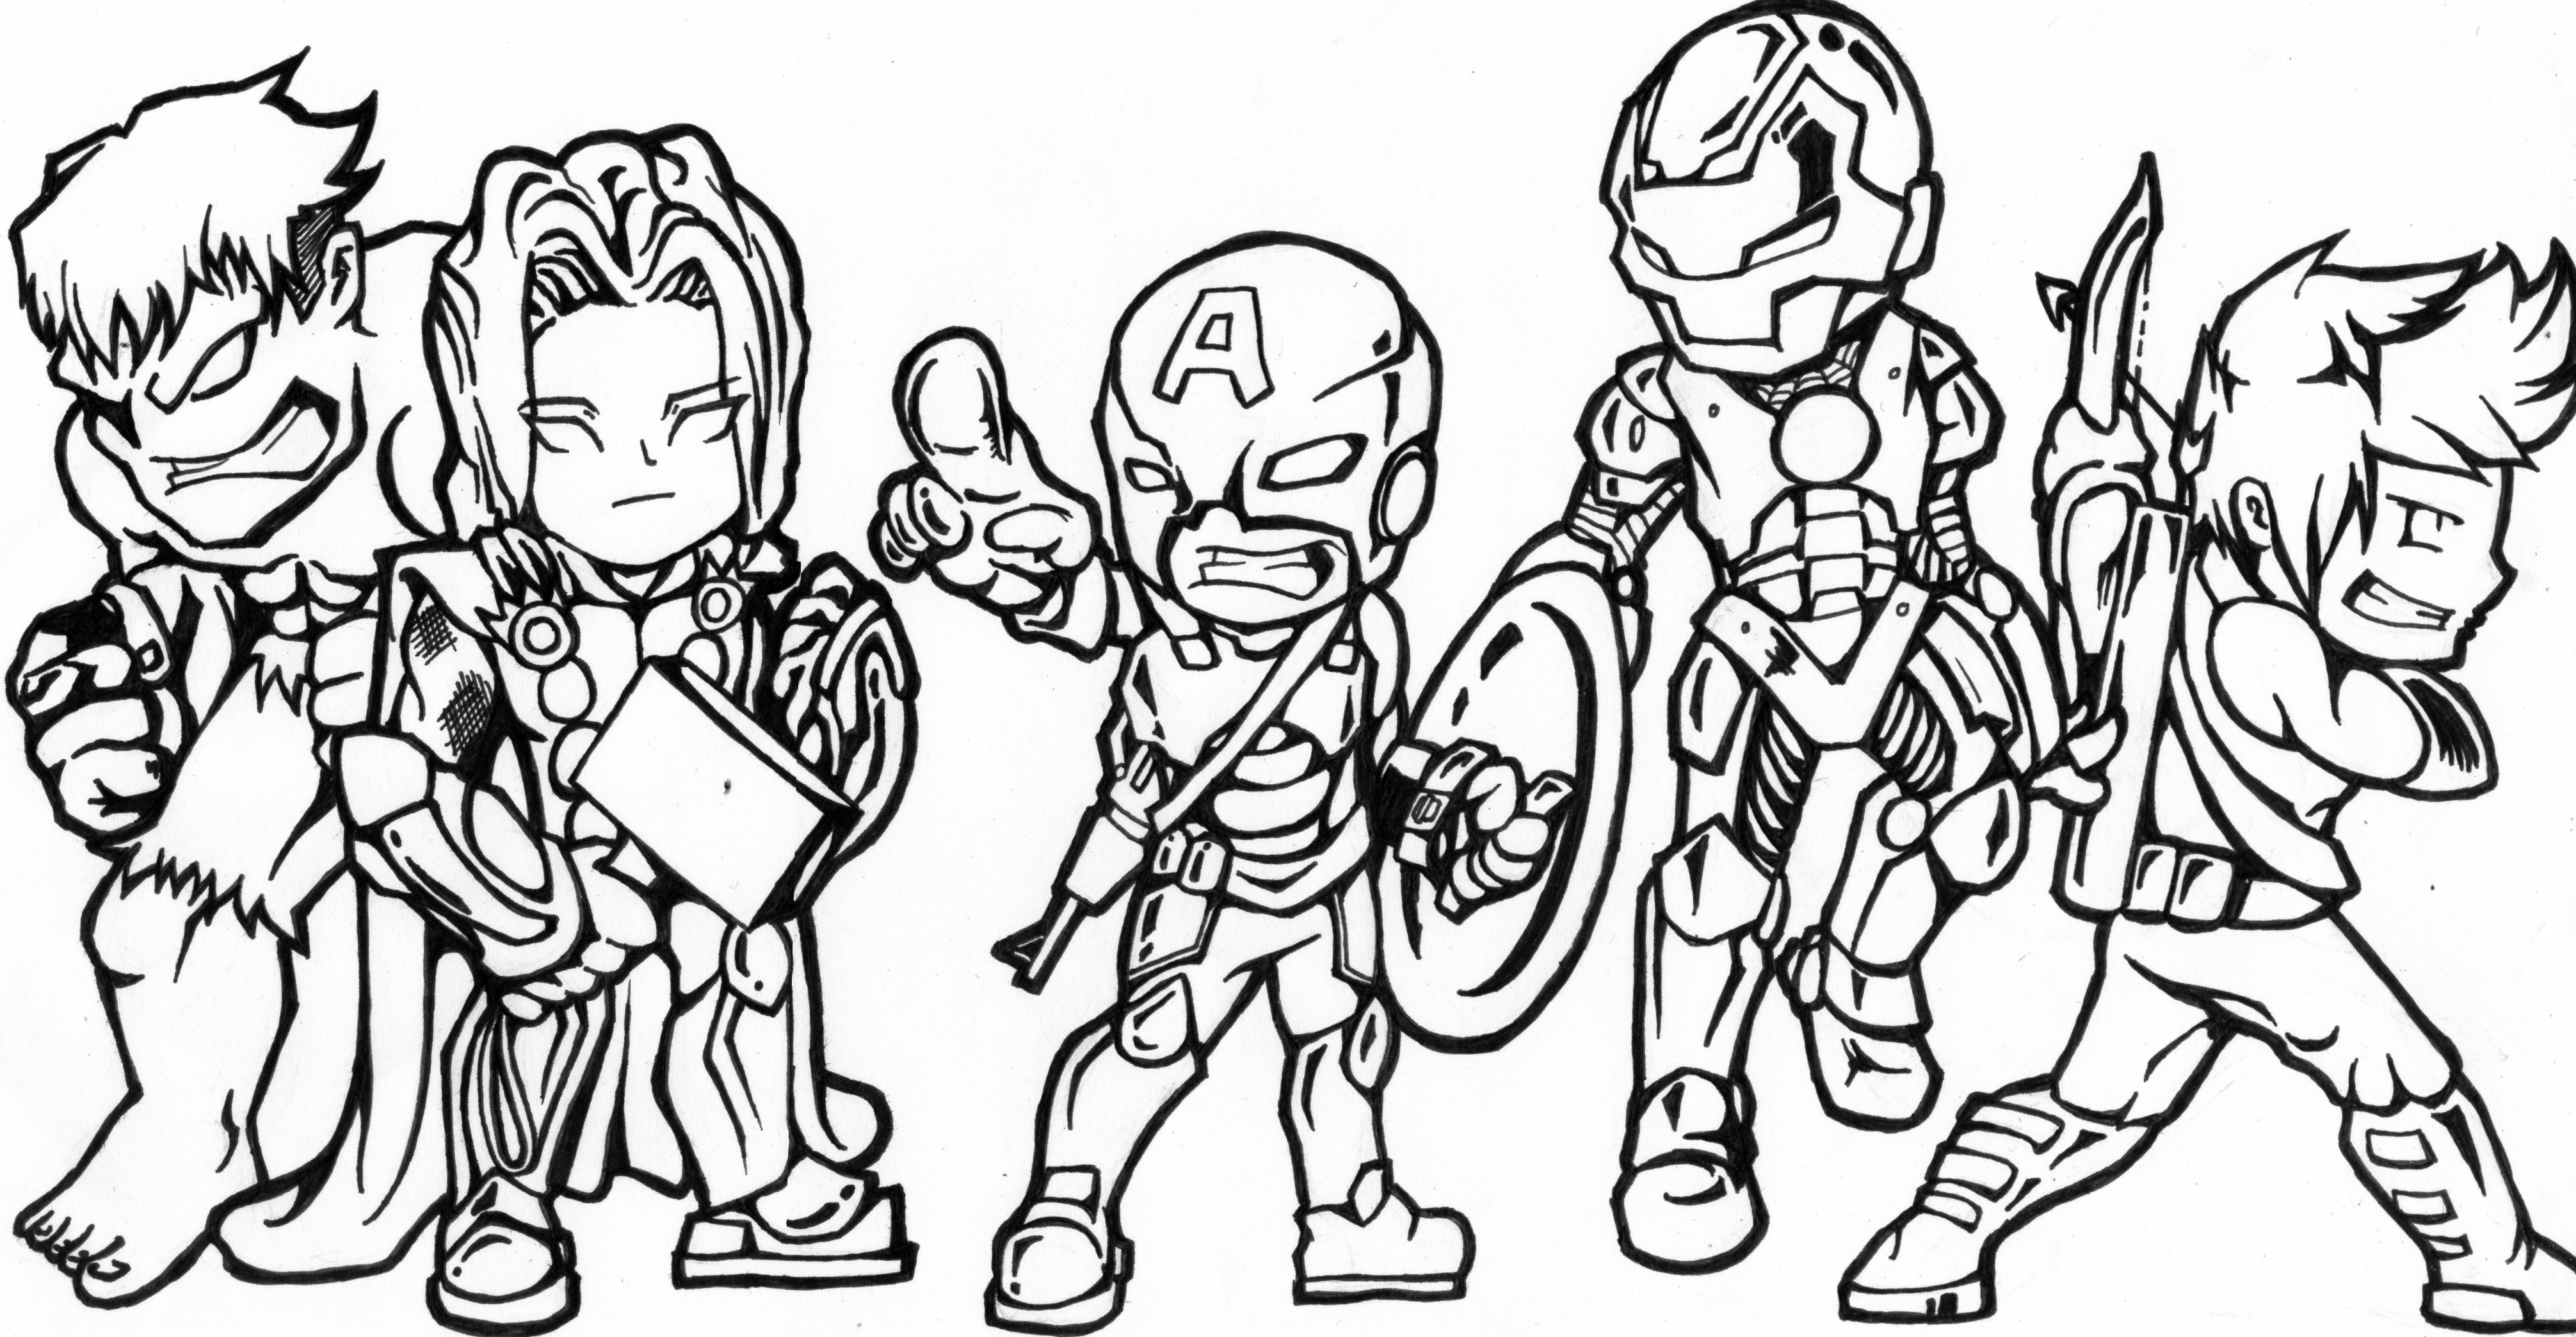 avengers drawing pictures the avengers by portraitlc on deviantart pictures avengers drawing